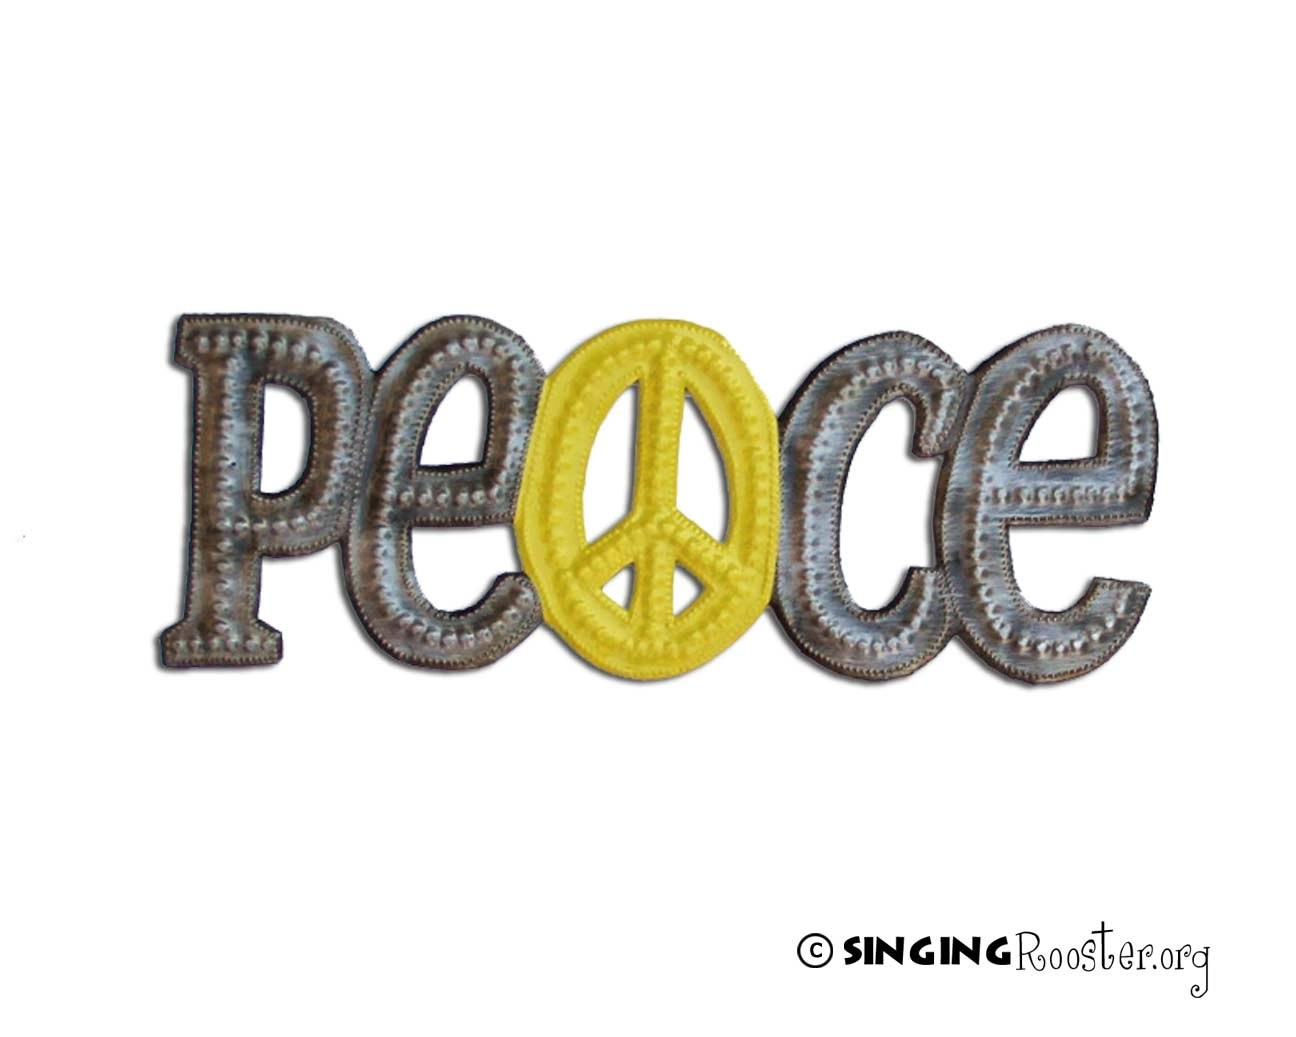 Peace Metal Word Art, Haiti. Fair Trade Federation Singing Rooster